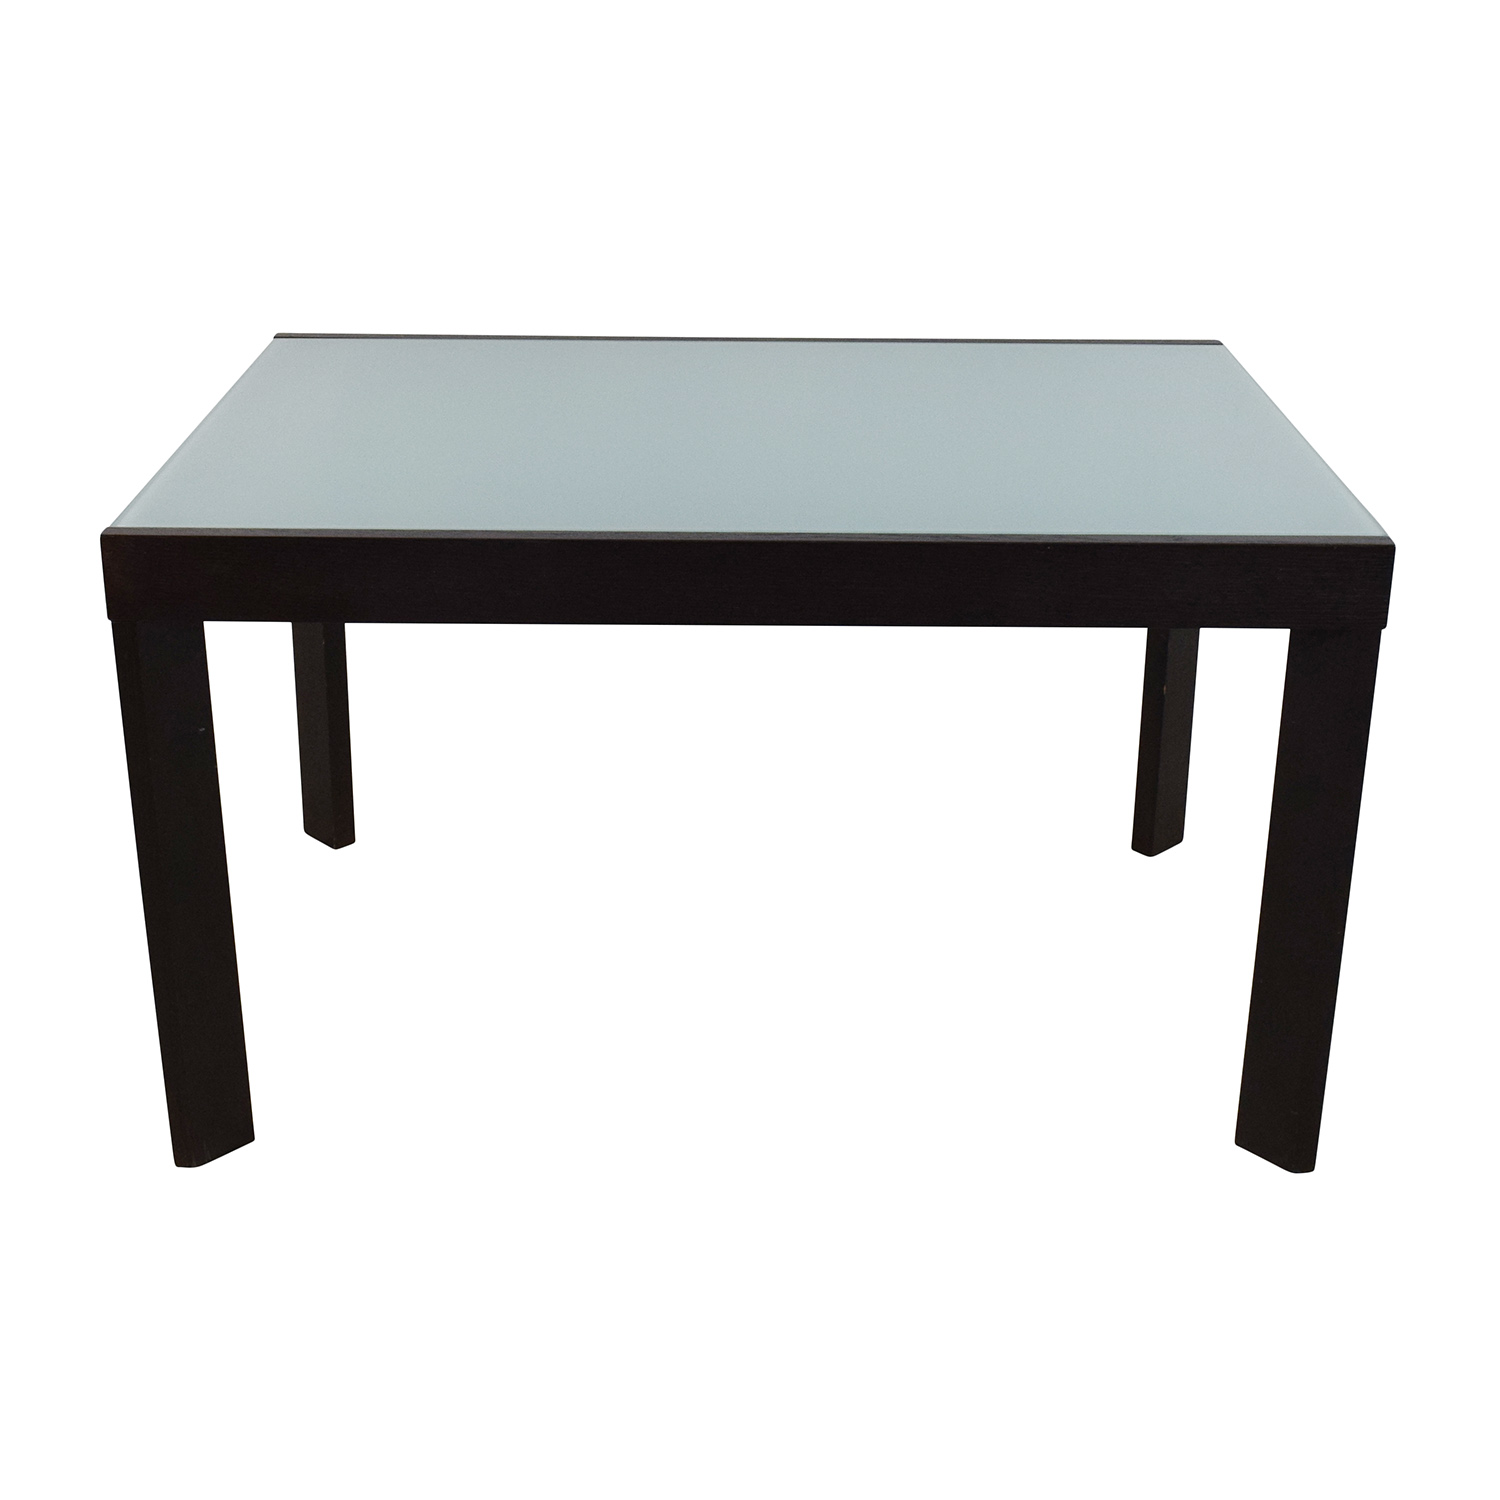 Calligaris Calligaris Extendable Glass Dining Table dimensions